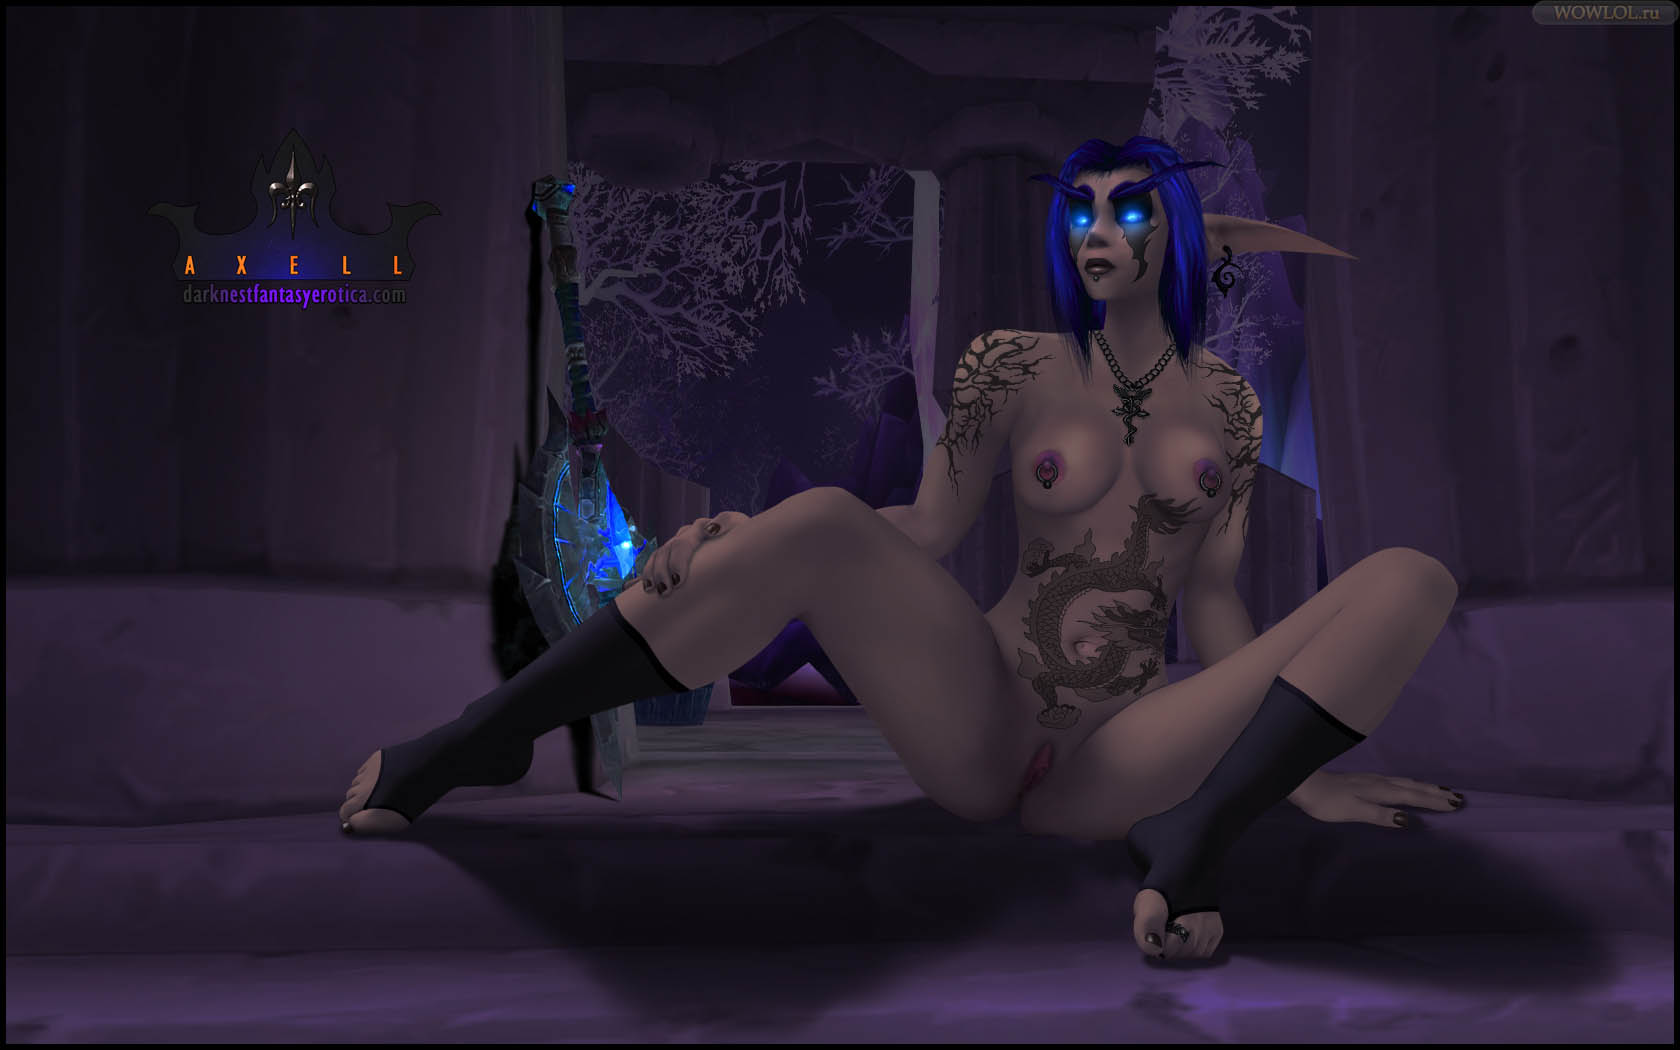 Nude mode sex in wow sexy picture